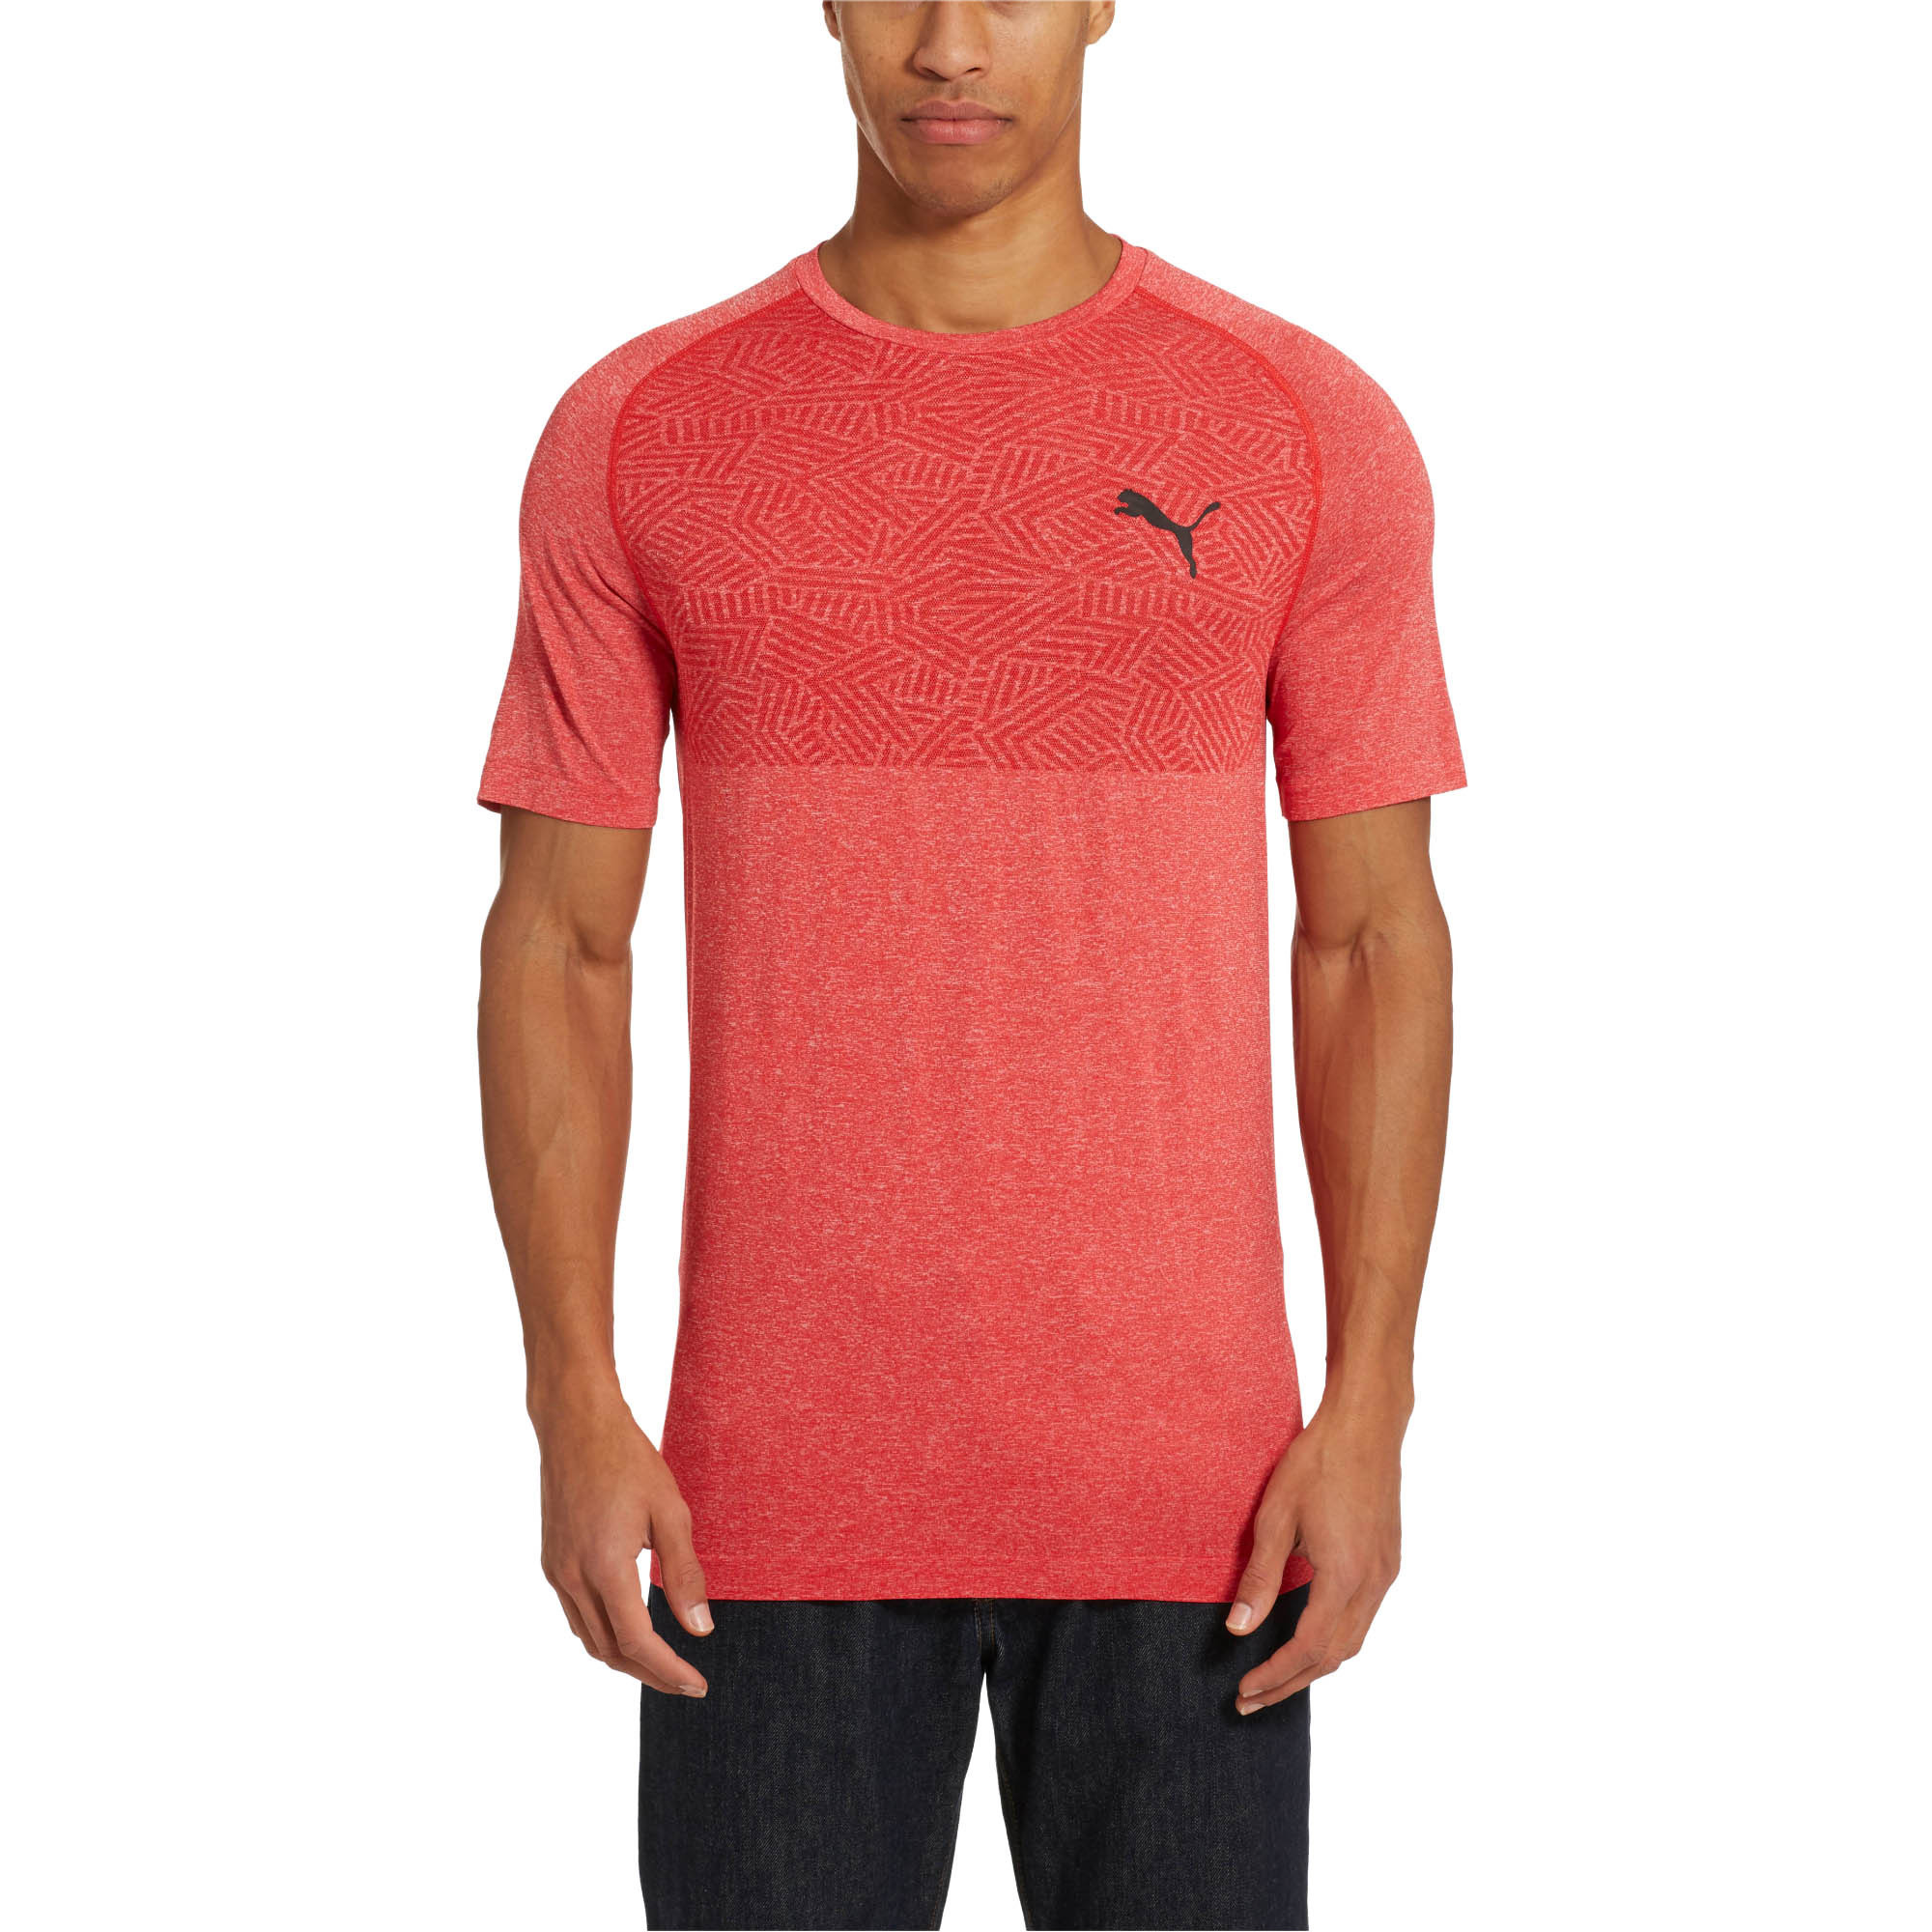 PUMA-Tec-Sports-Men-s-evoKNIT-Tee-Men-Tee-Basics thumbnail 13